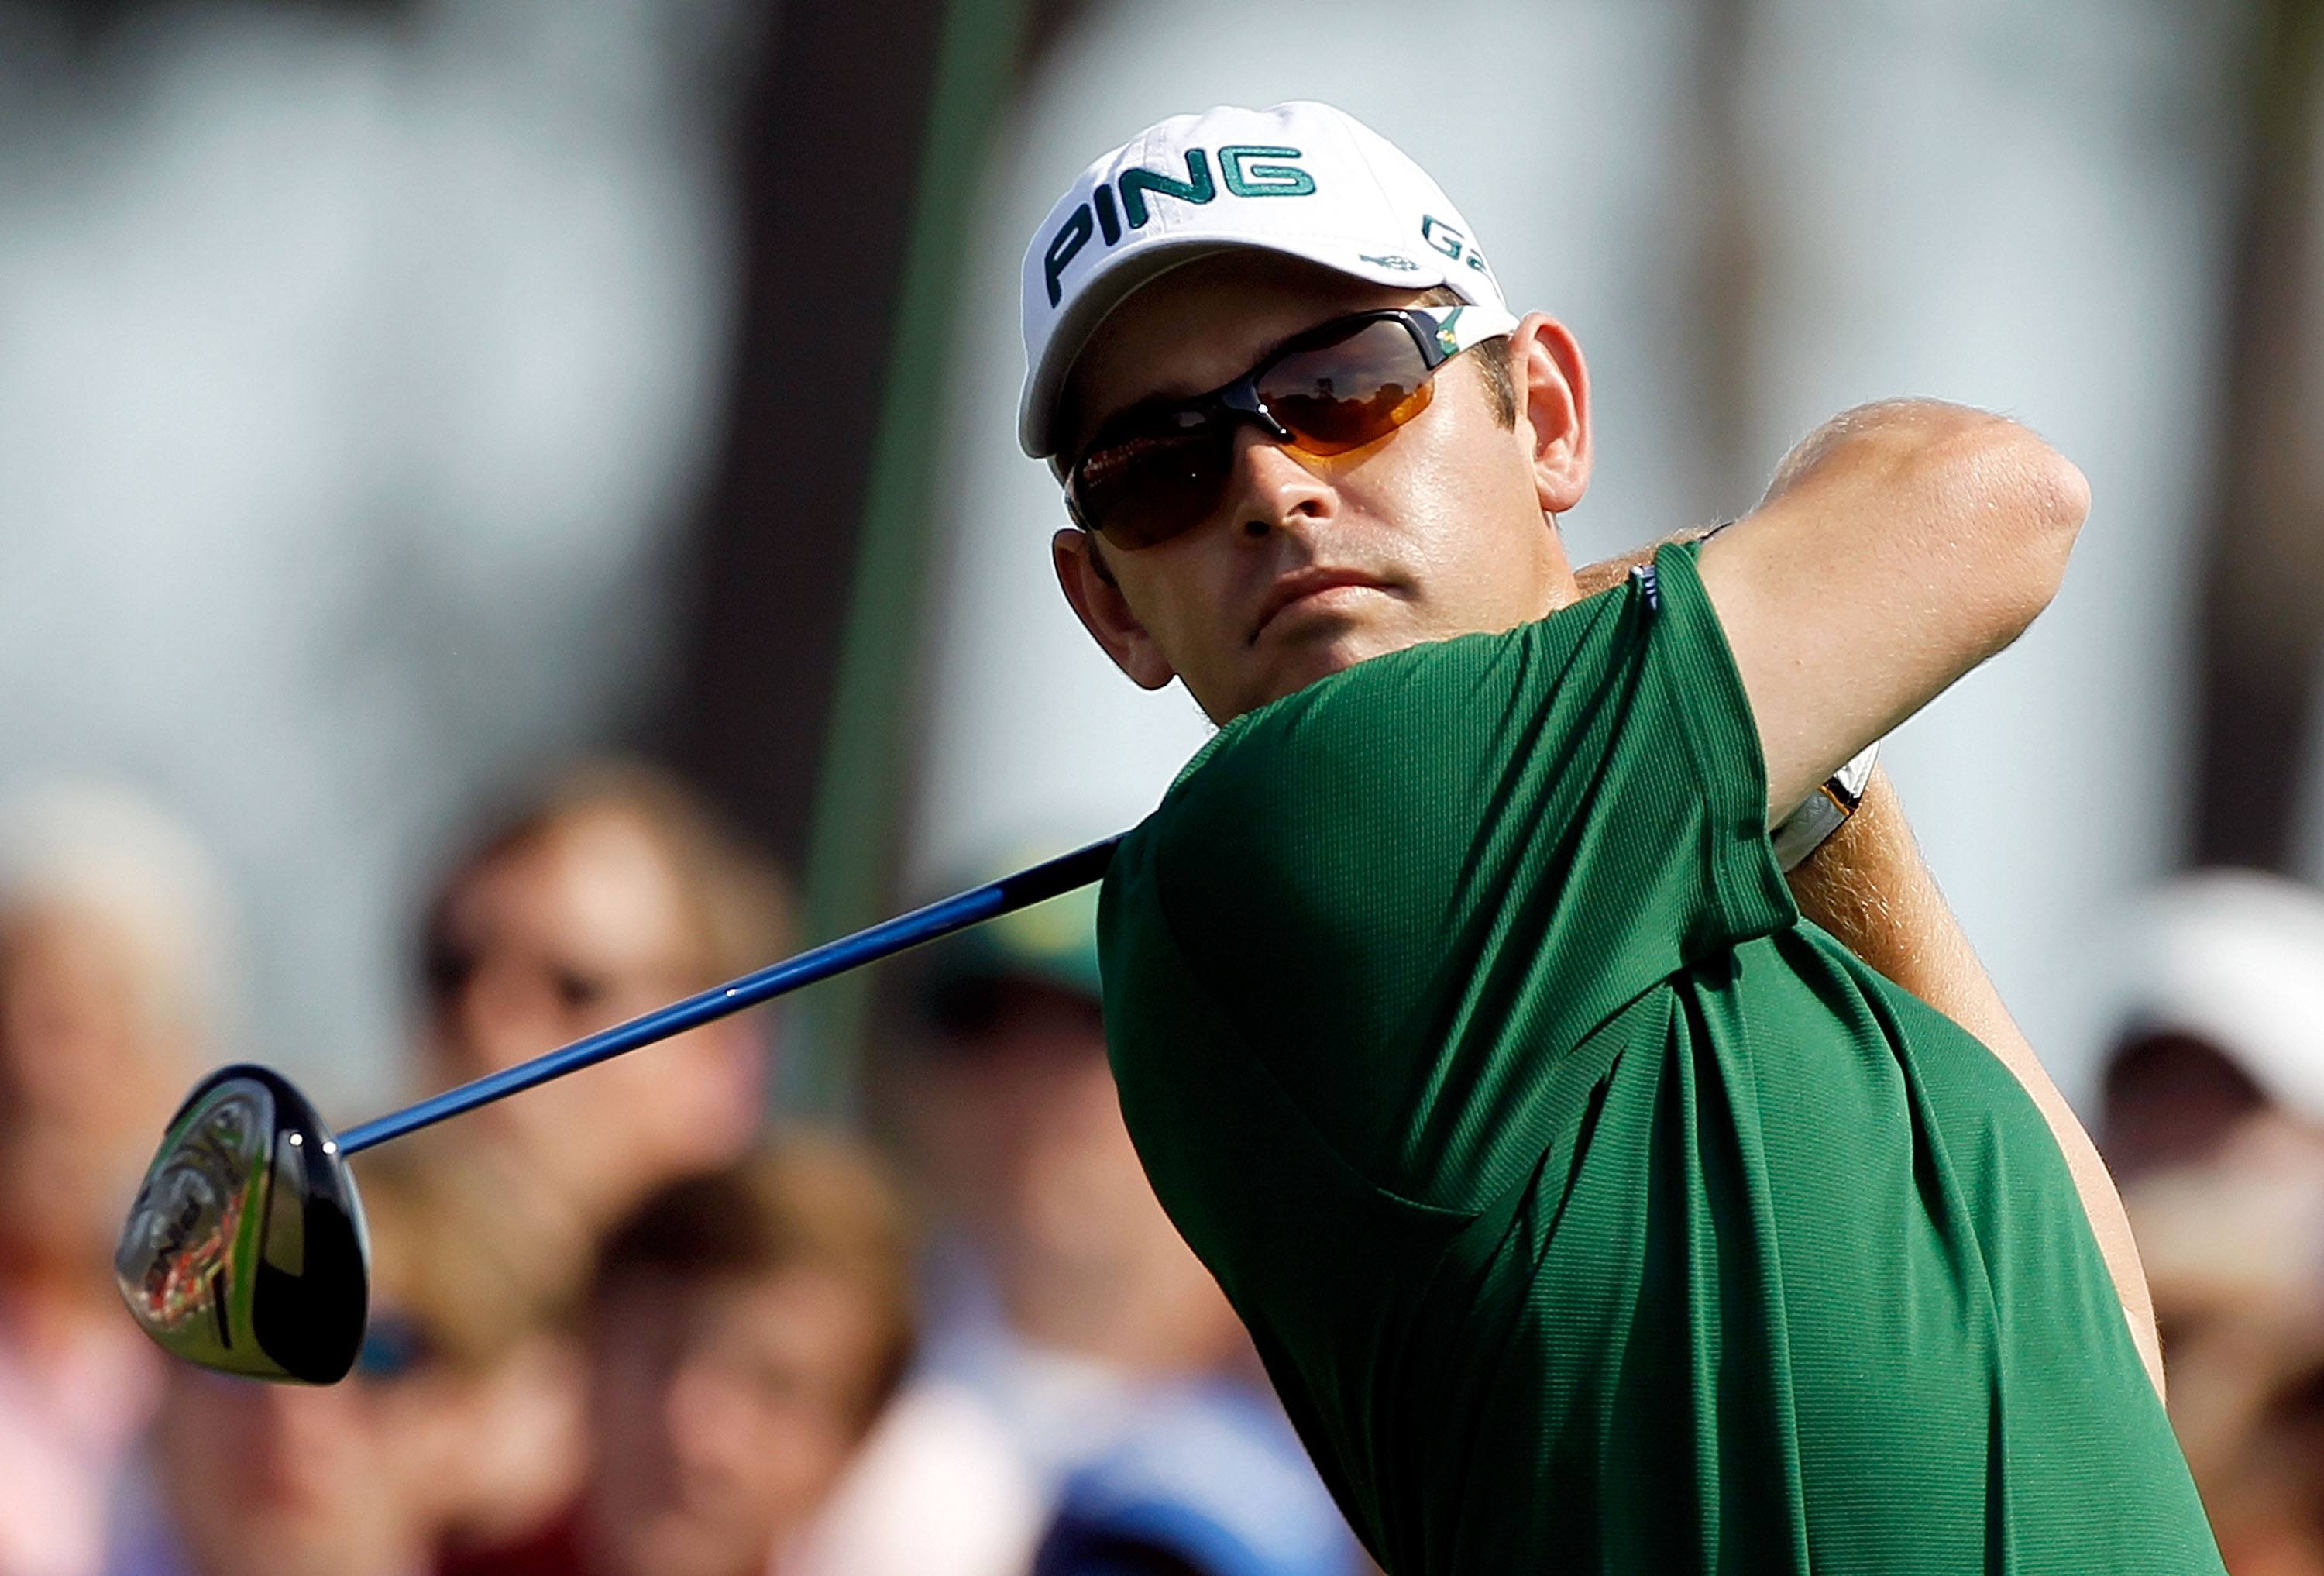 Louis Oosthuizen is about to make a mind-blowing shot.